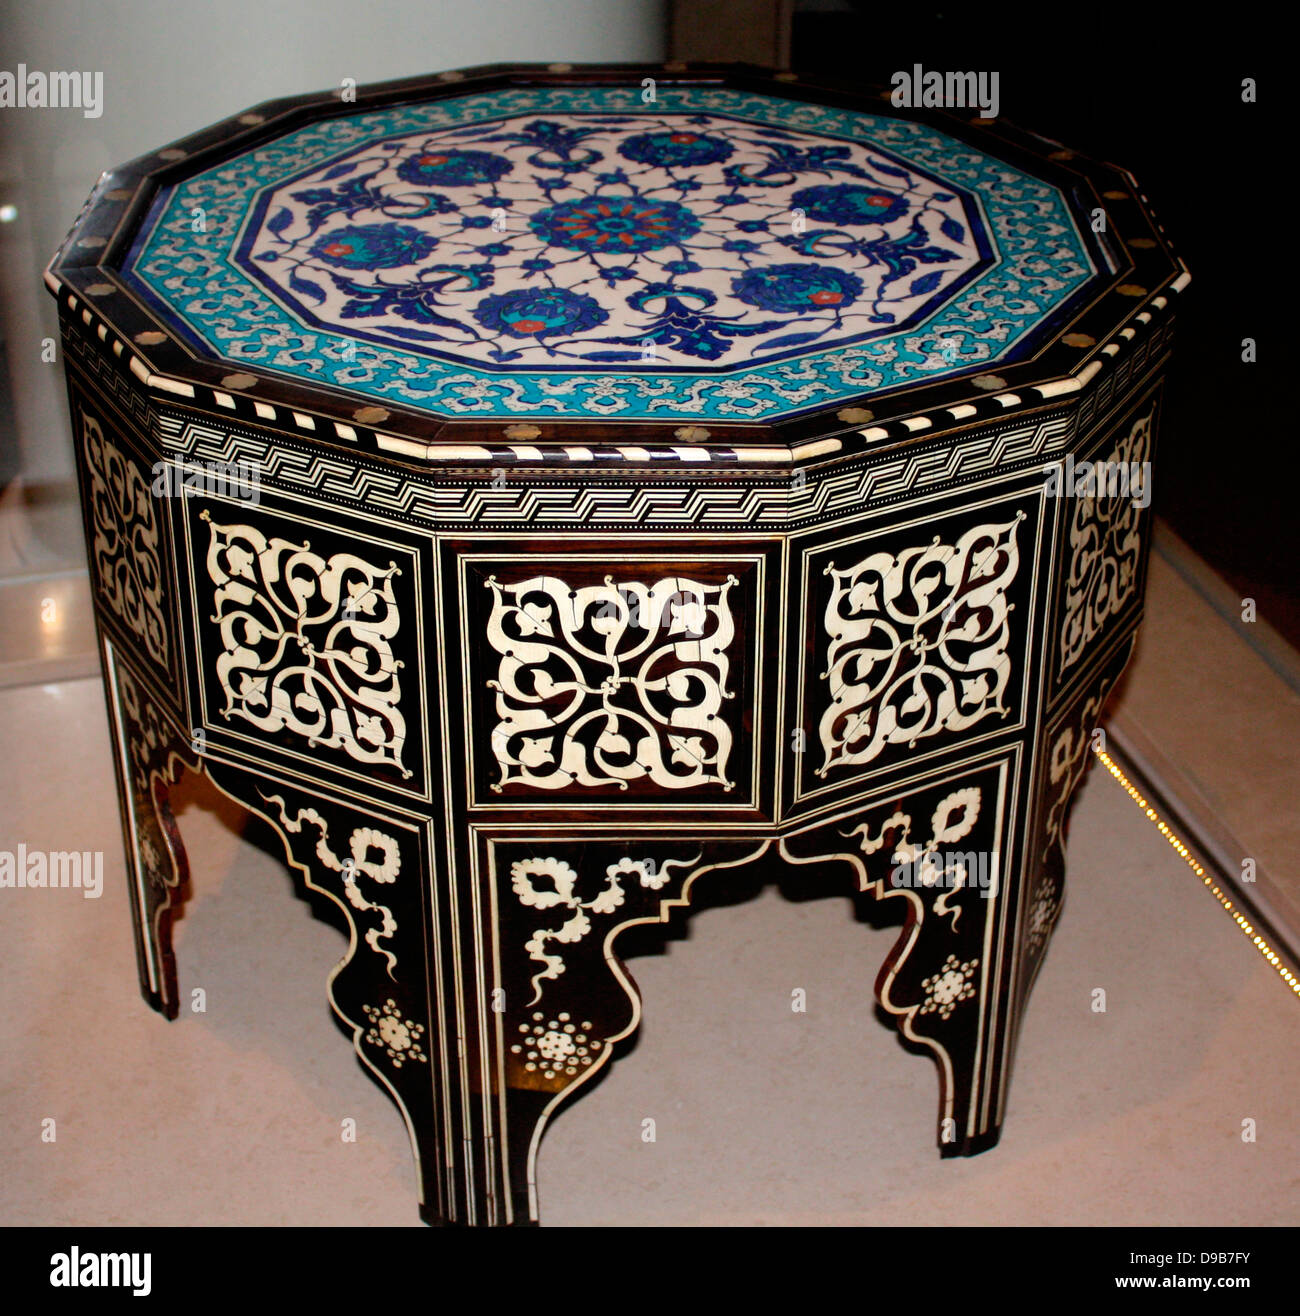 Tile Top Table. Wood Faced With Ebony, Inlay Of Ivory And Mother Of Pearl  Fritware Painted Under Glaze. Turkey, Iznik And